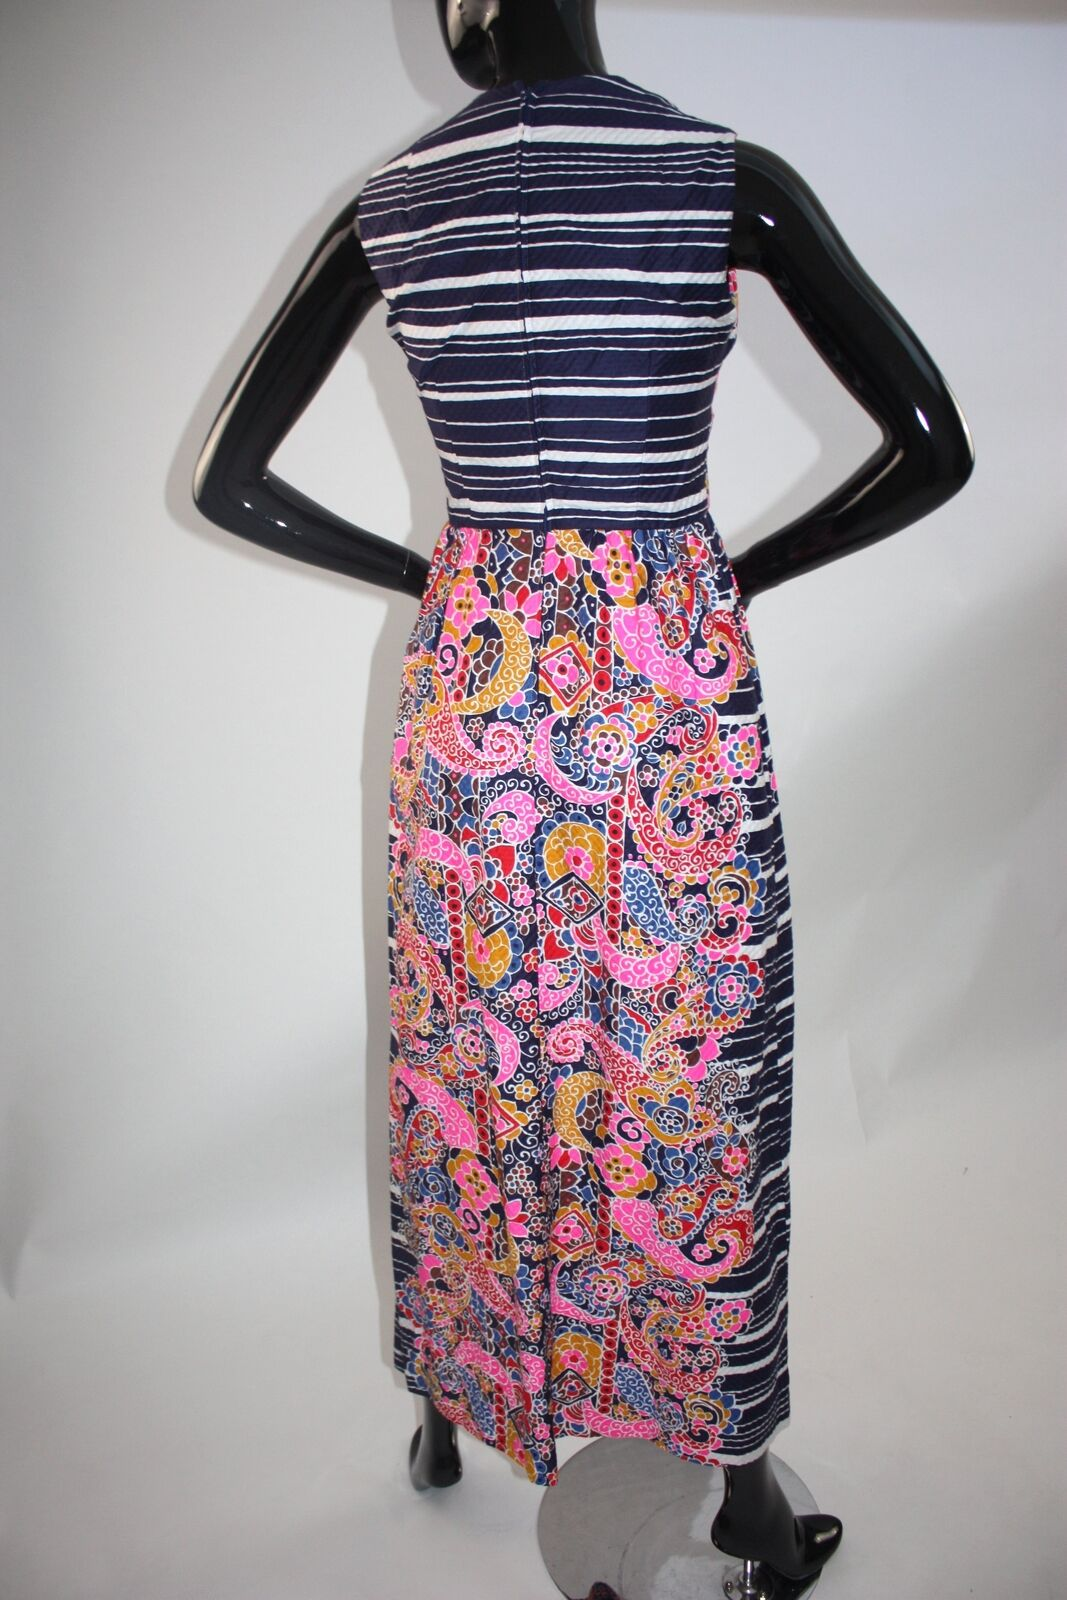 Vintage 1970s Psychedelic print maxi dress - image 2